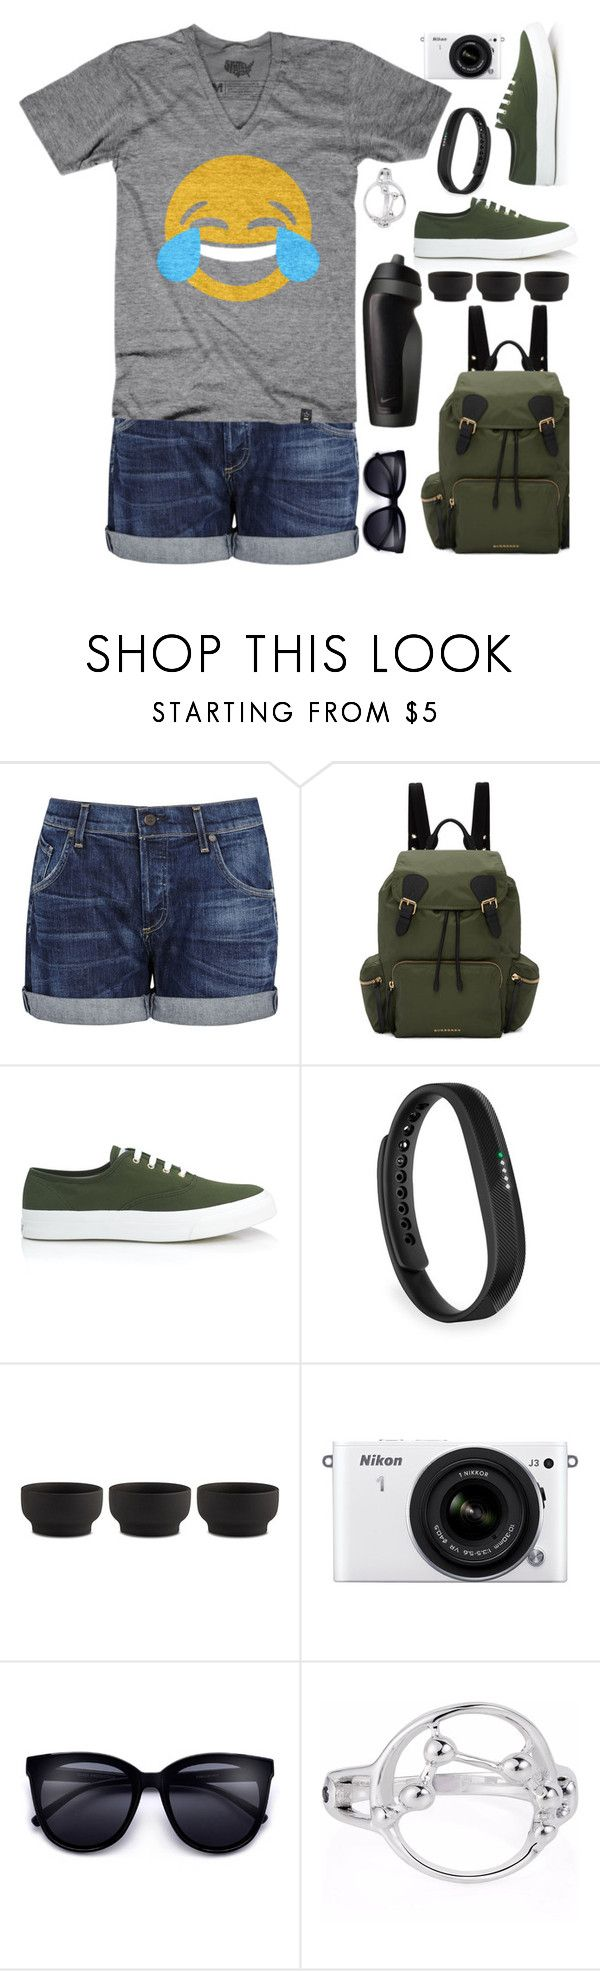 """Happy world Laughter day! Hike, laugh, stay FIT."" by arohii ❤ liked on Polyvore featuring Citizens of Humanity, Burberry, Maison Kitsuné, Fitbit, NIKE, Stelton, Nikon, fitness, sporty and emojifashion"